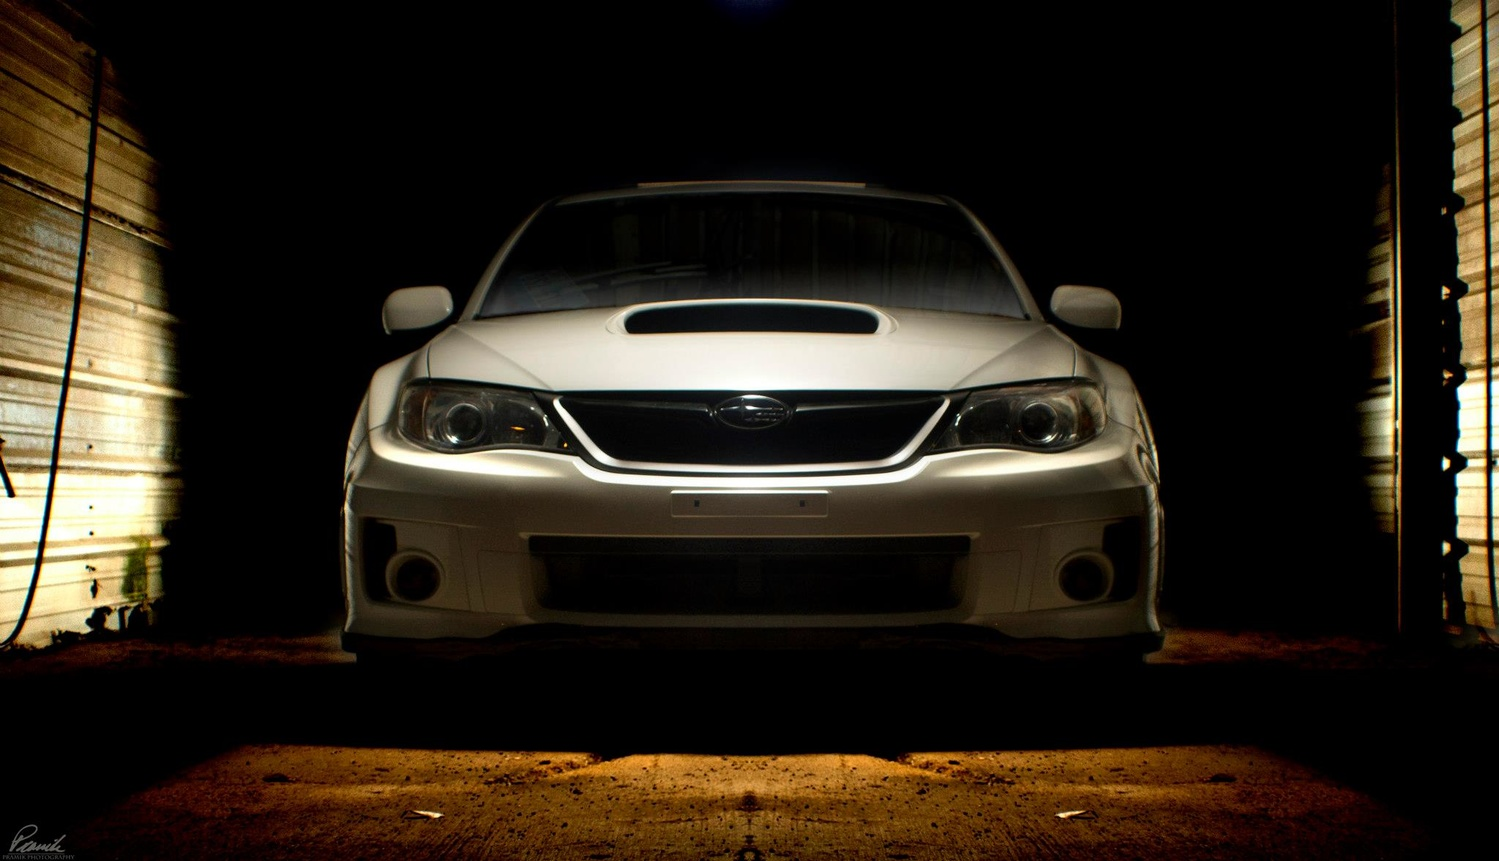 Subaru Composite automotive photography photoshop adobe lightroom